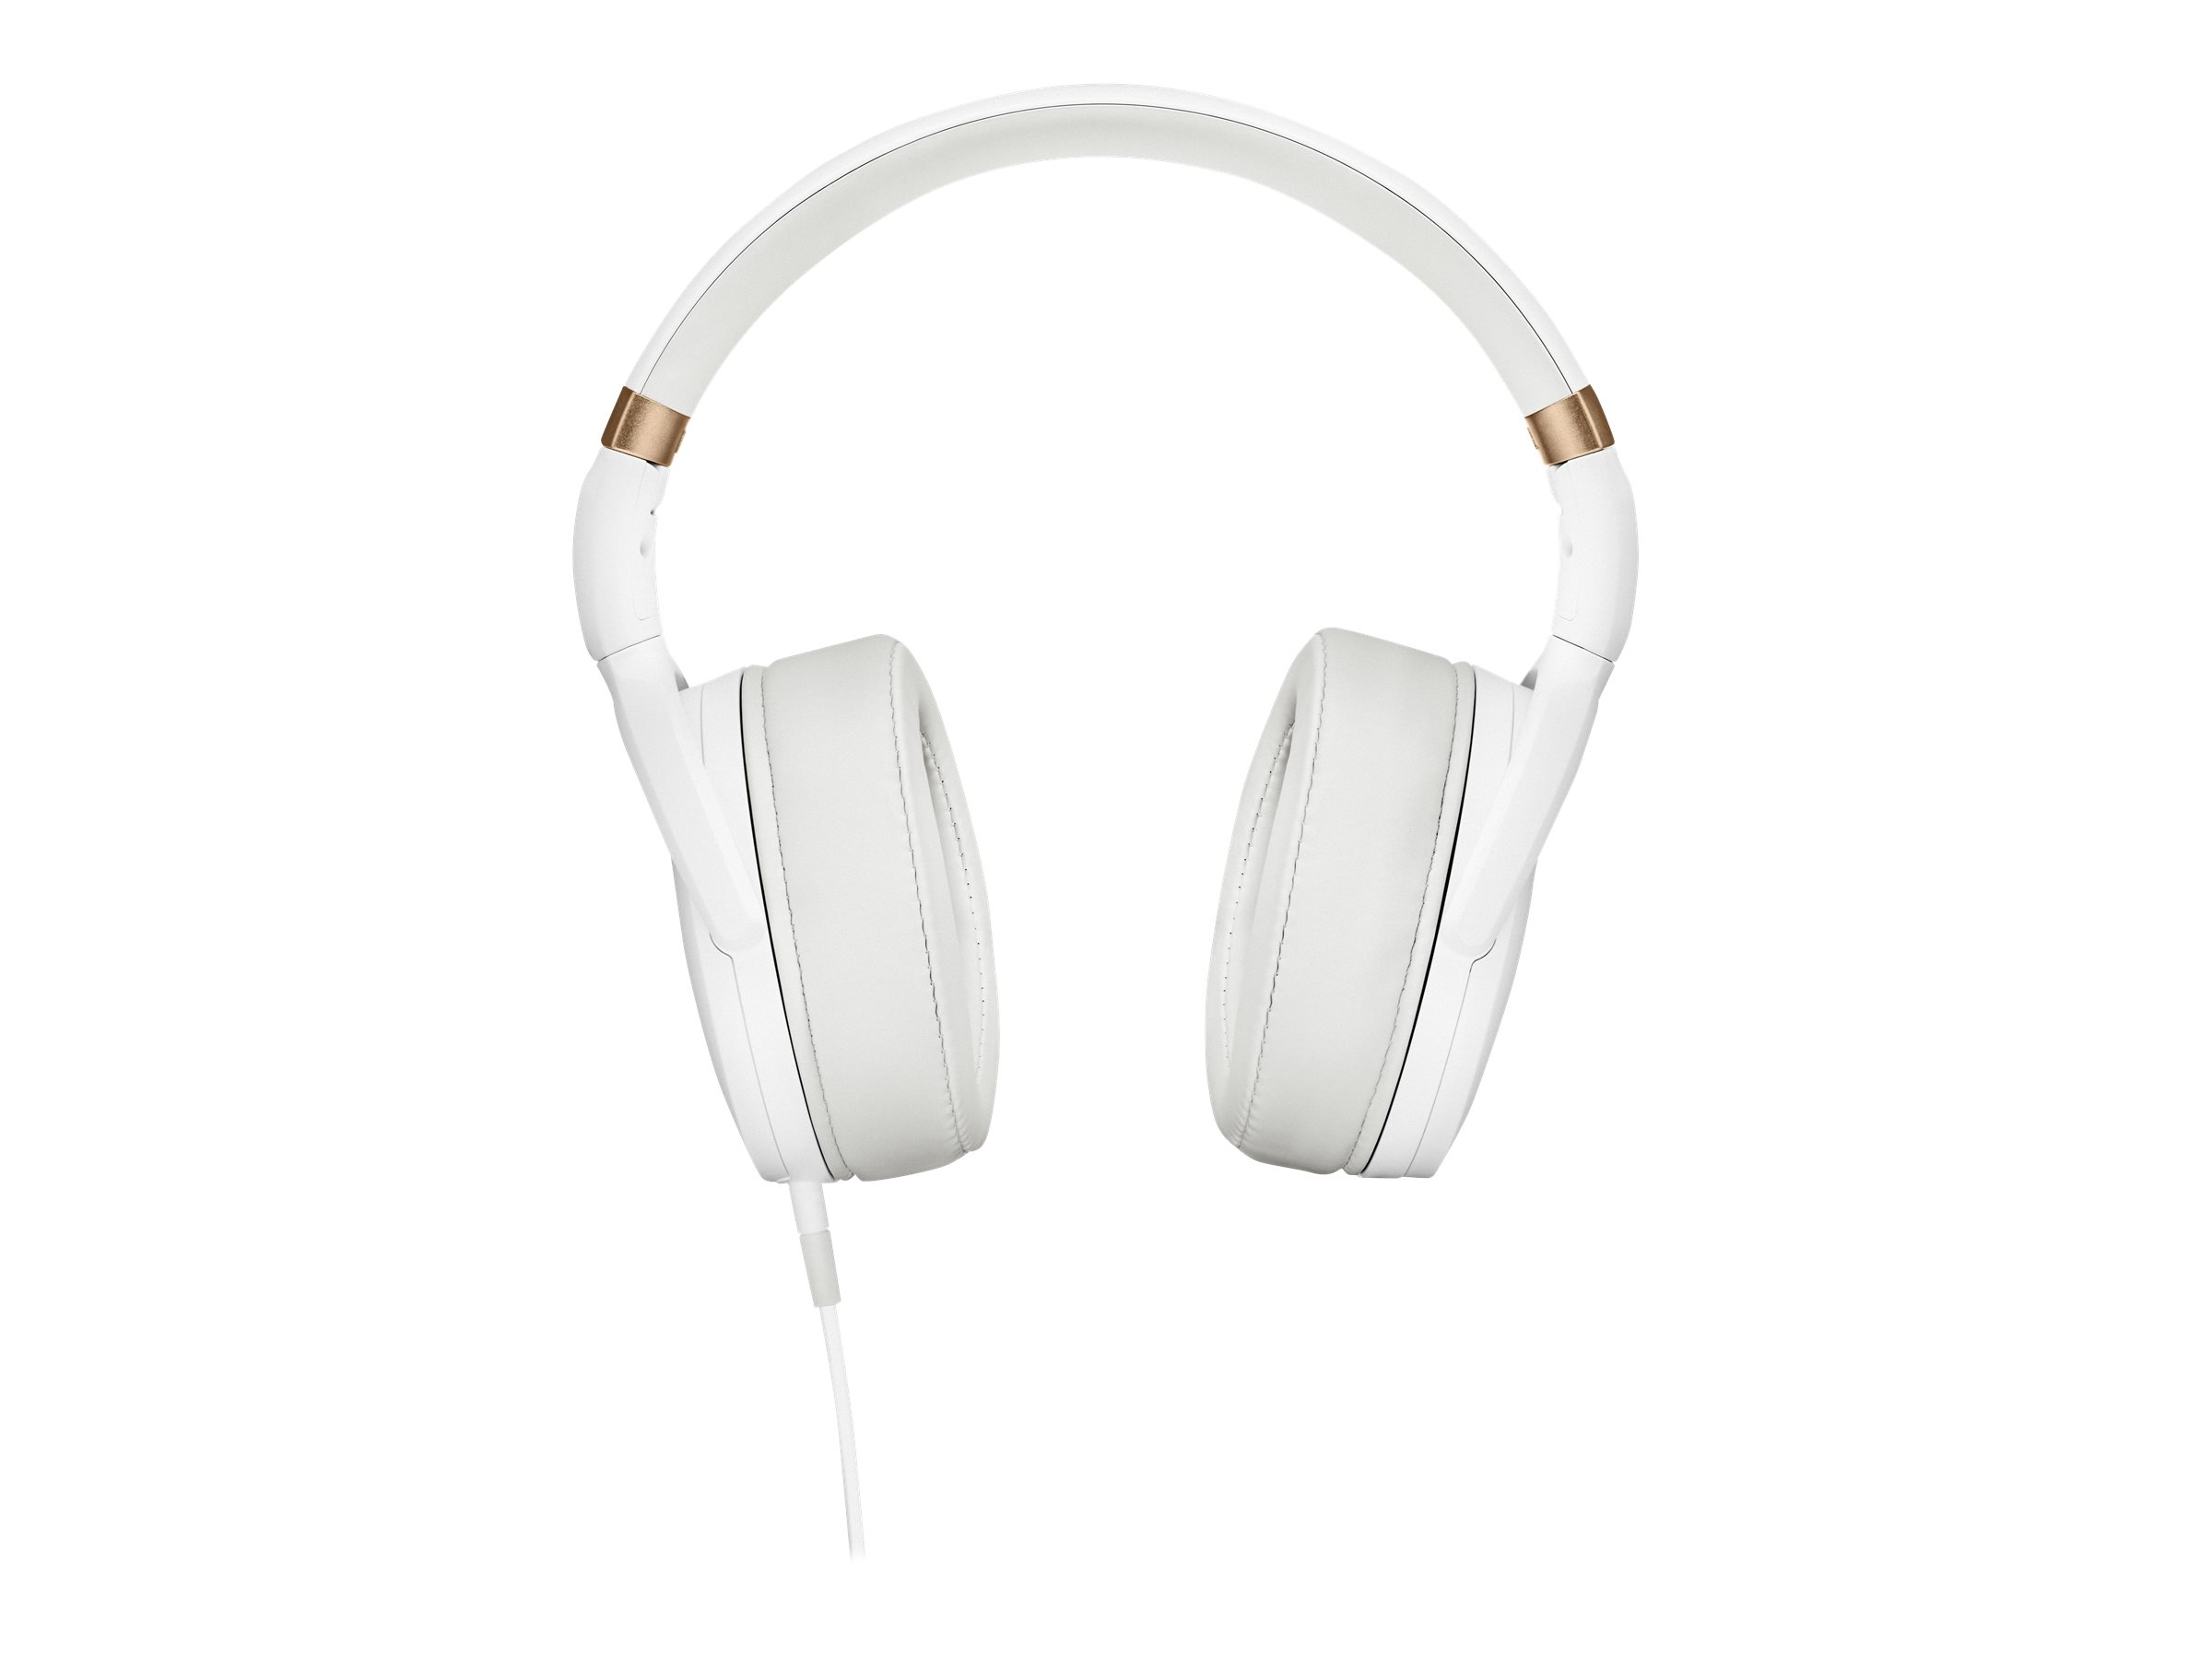 Image for Sennheiser Hd 4.30I - Headphones With Mic from Circuit City